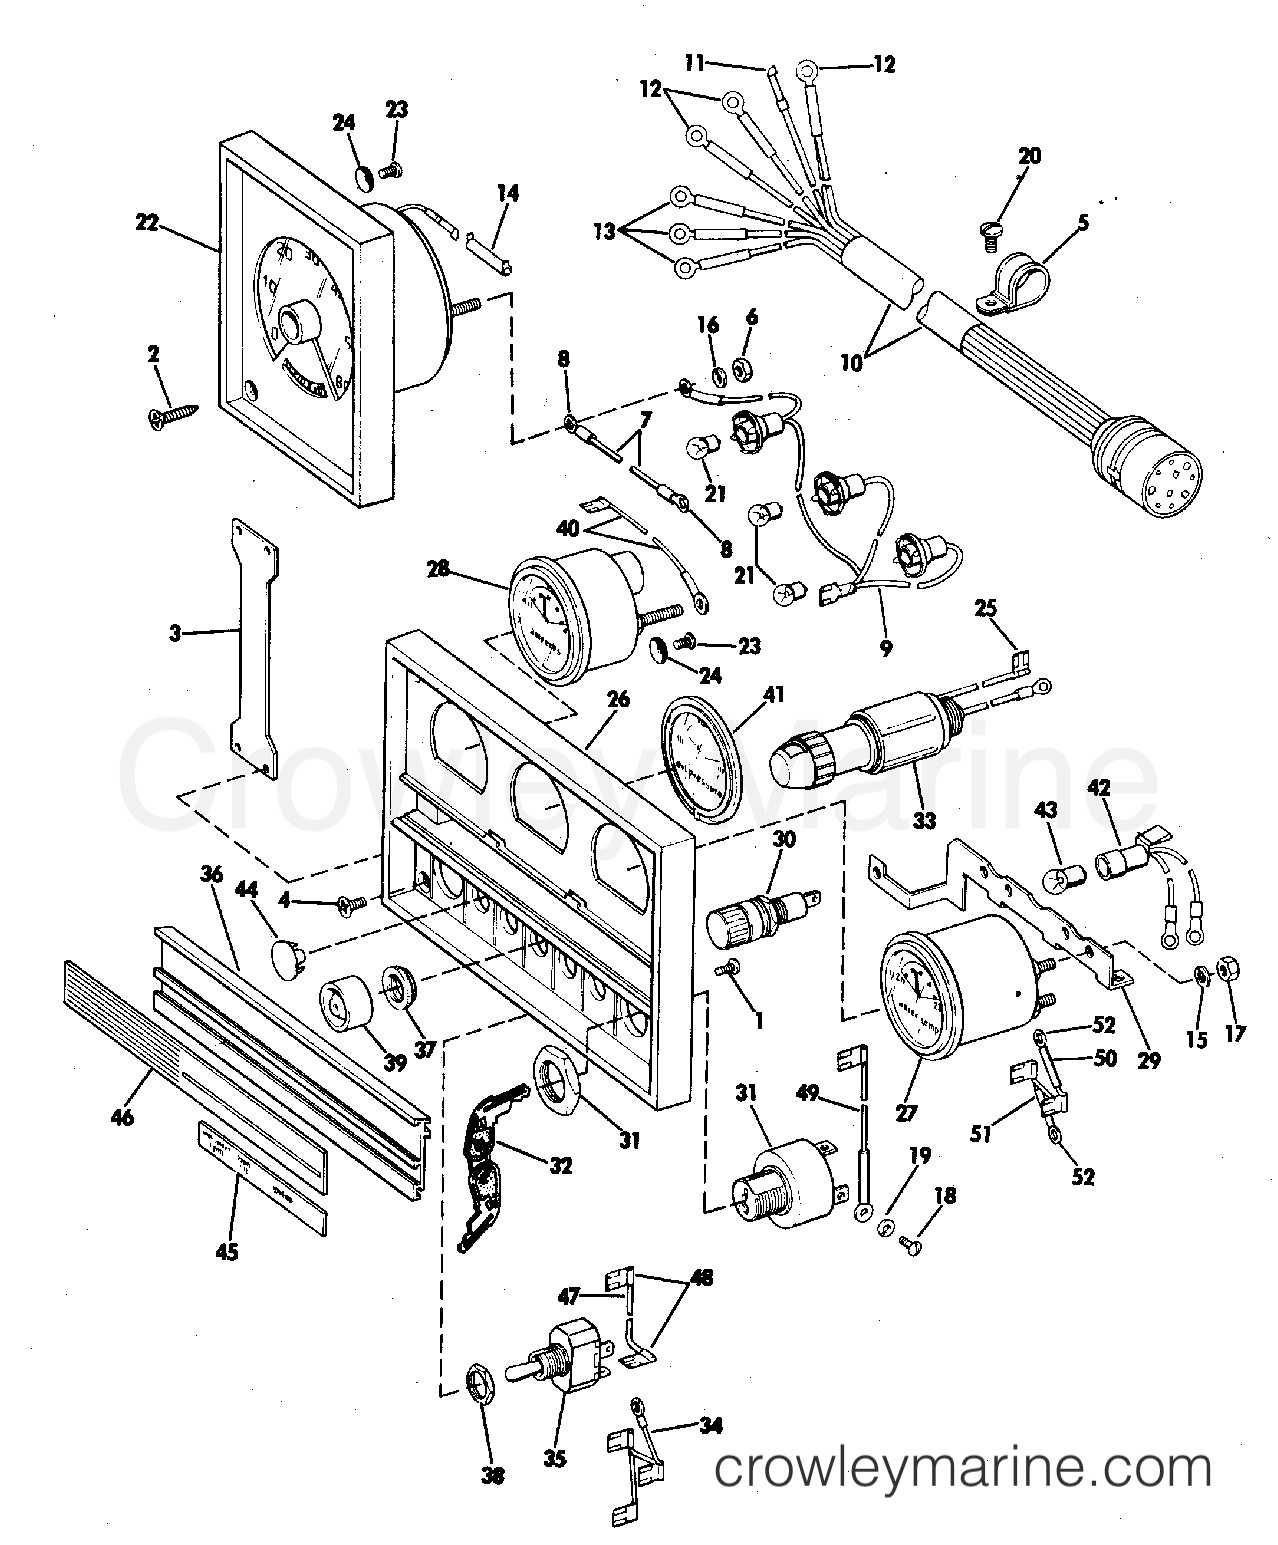 INSTRUMENT AND PANEL ASSEMBLY OPTIONAL ITEM-ALL MODELS